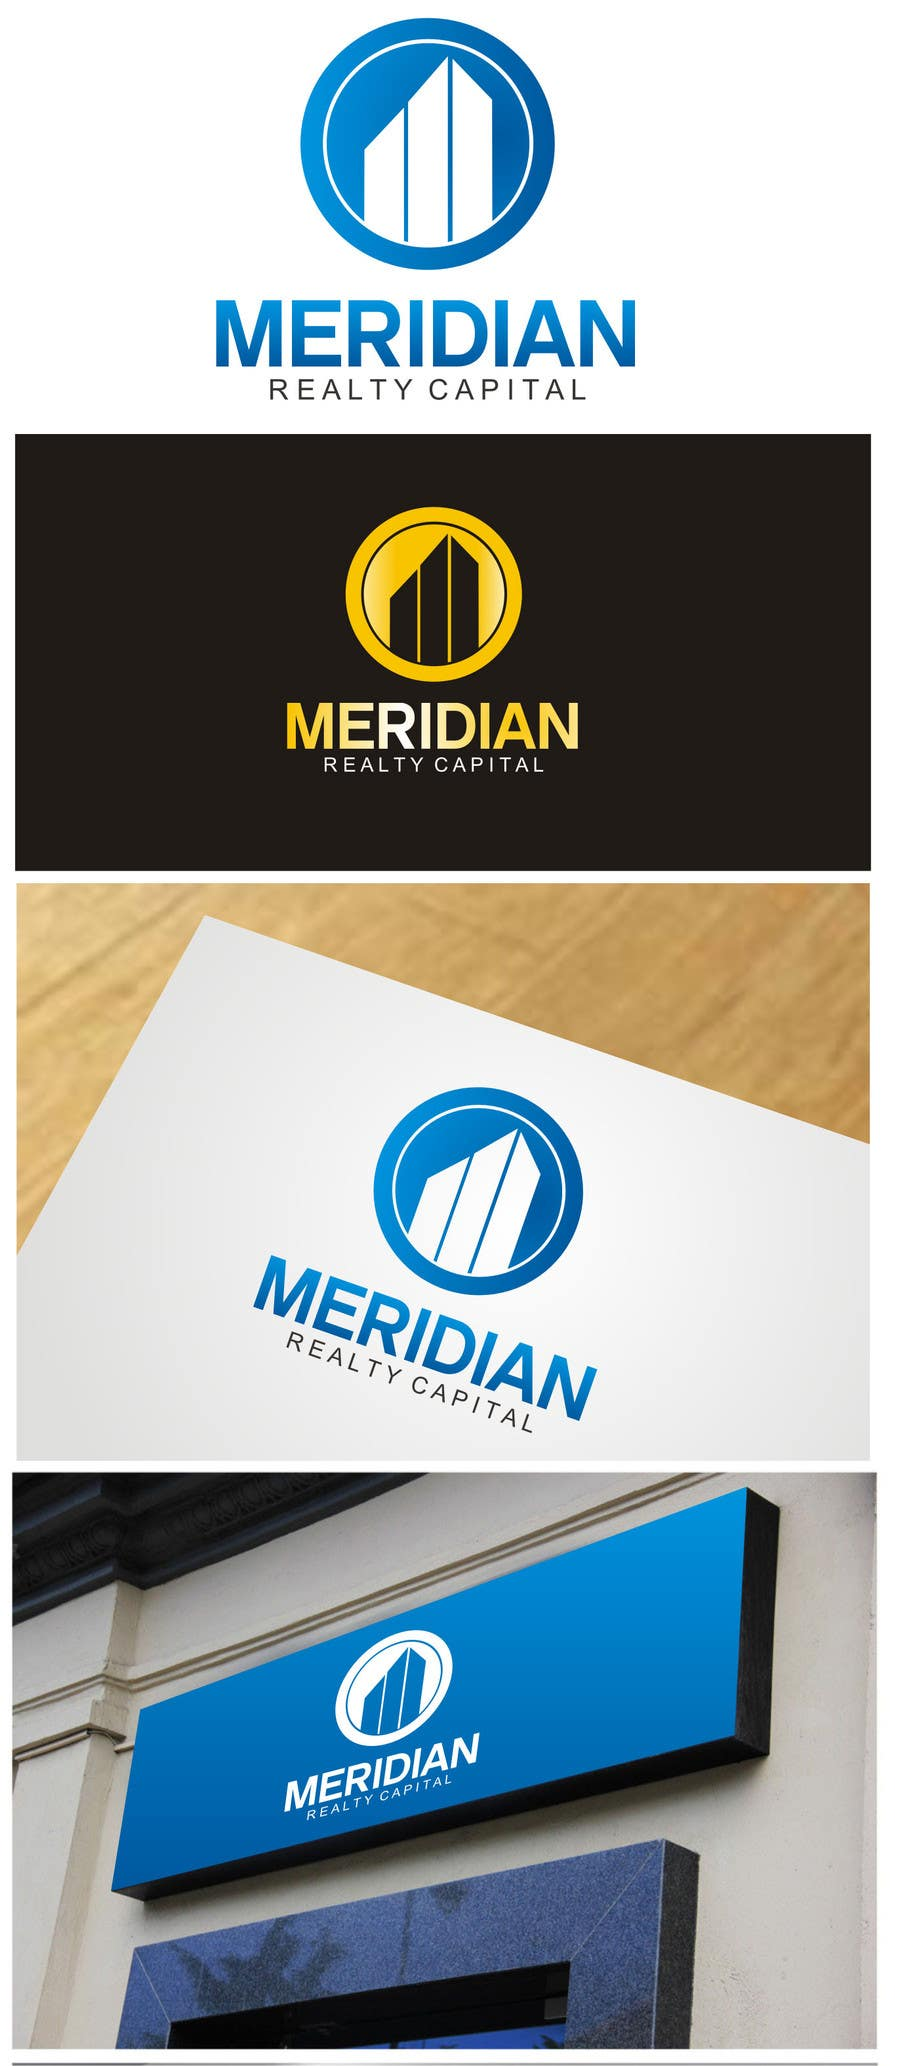 #385 for Logo Design for Meridian Realty Capital by ezra66